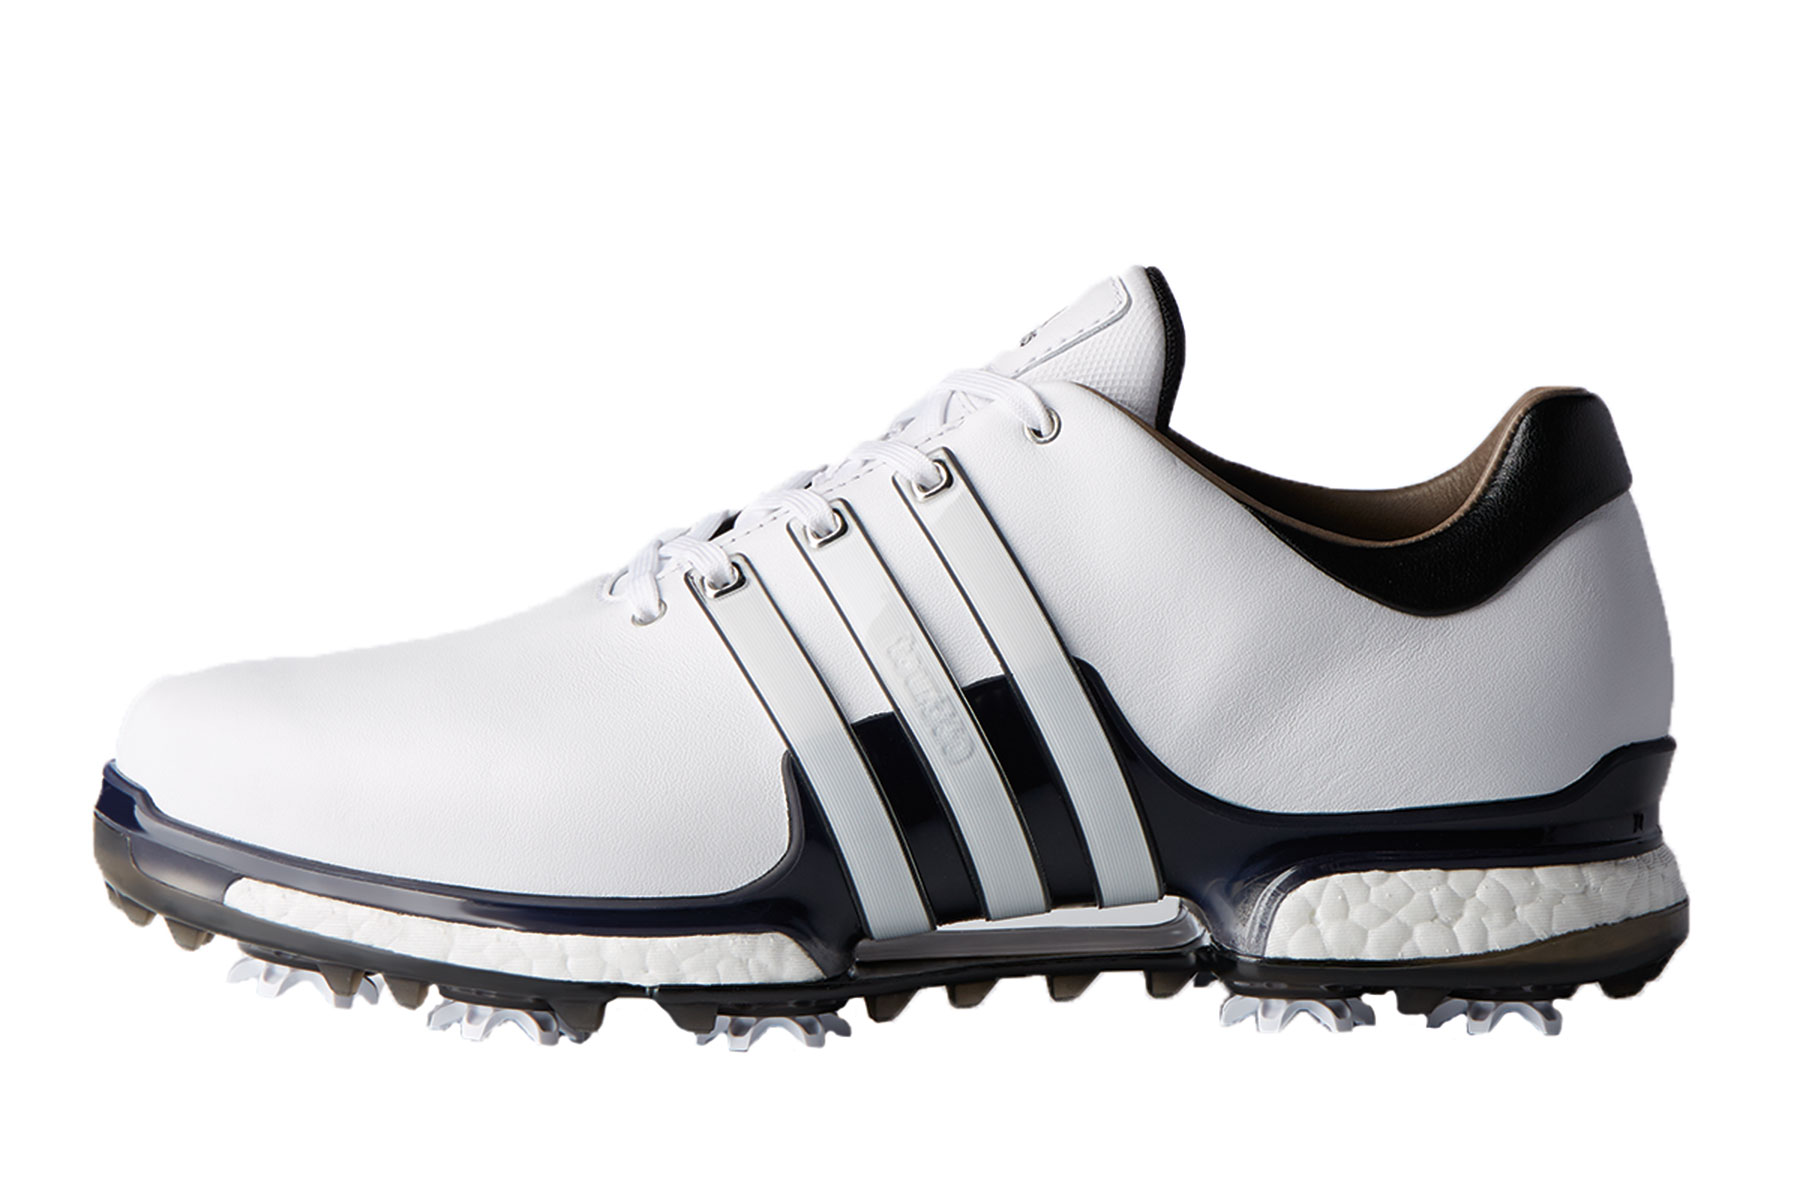 Adidas Golf Shoe Bag Uk